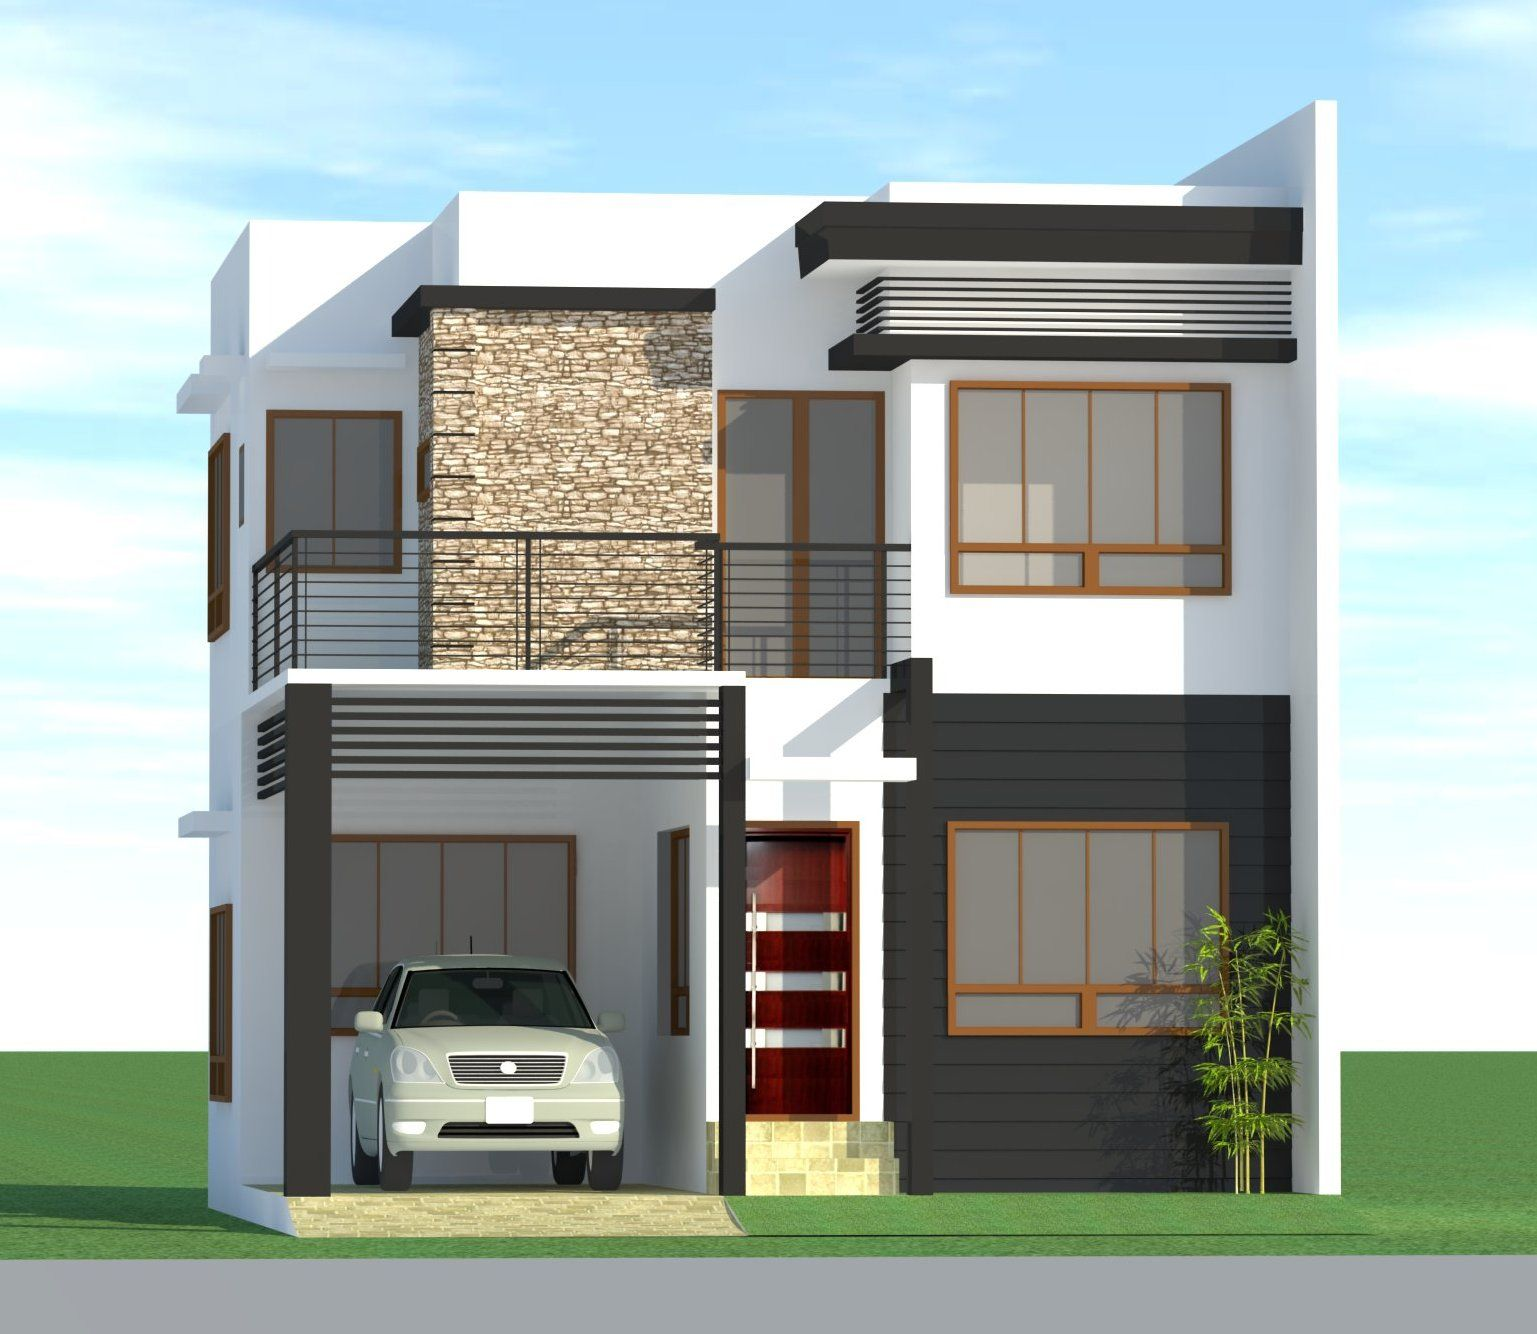 Philippines House Design Images 3 Home Design Ideas: cheap modern house design